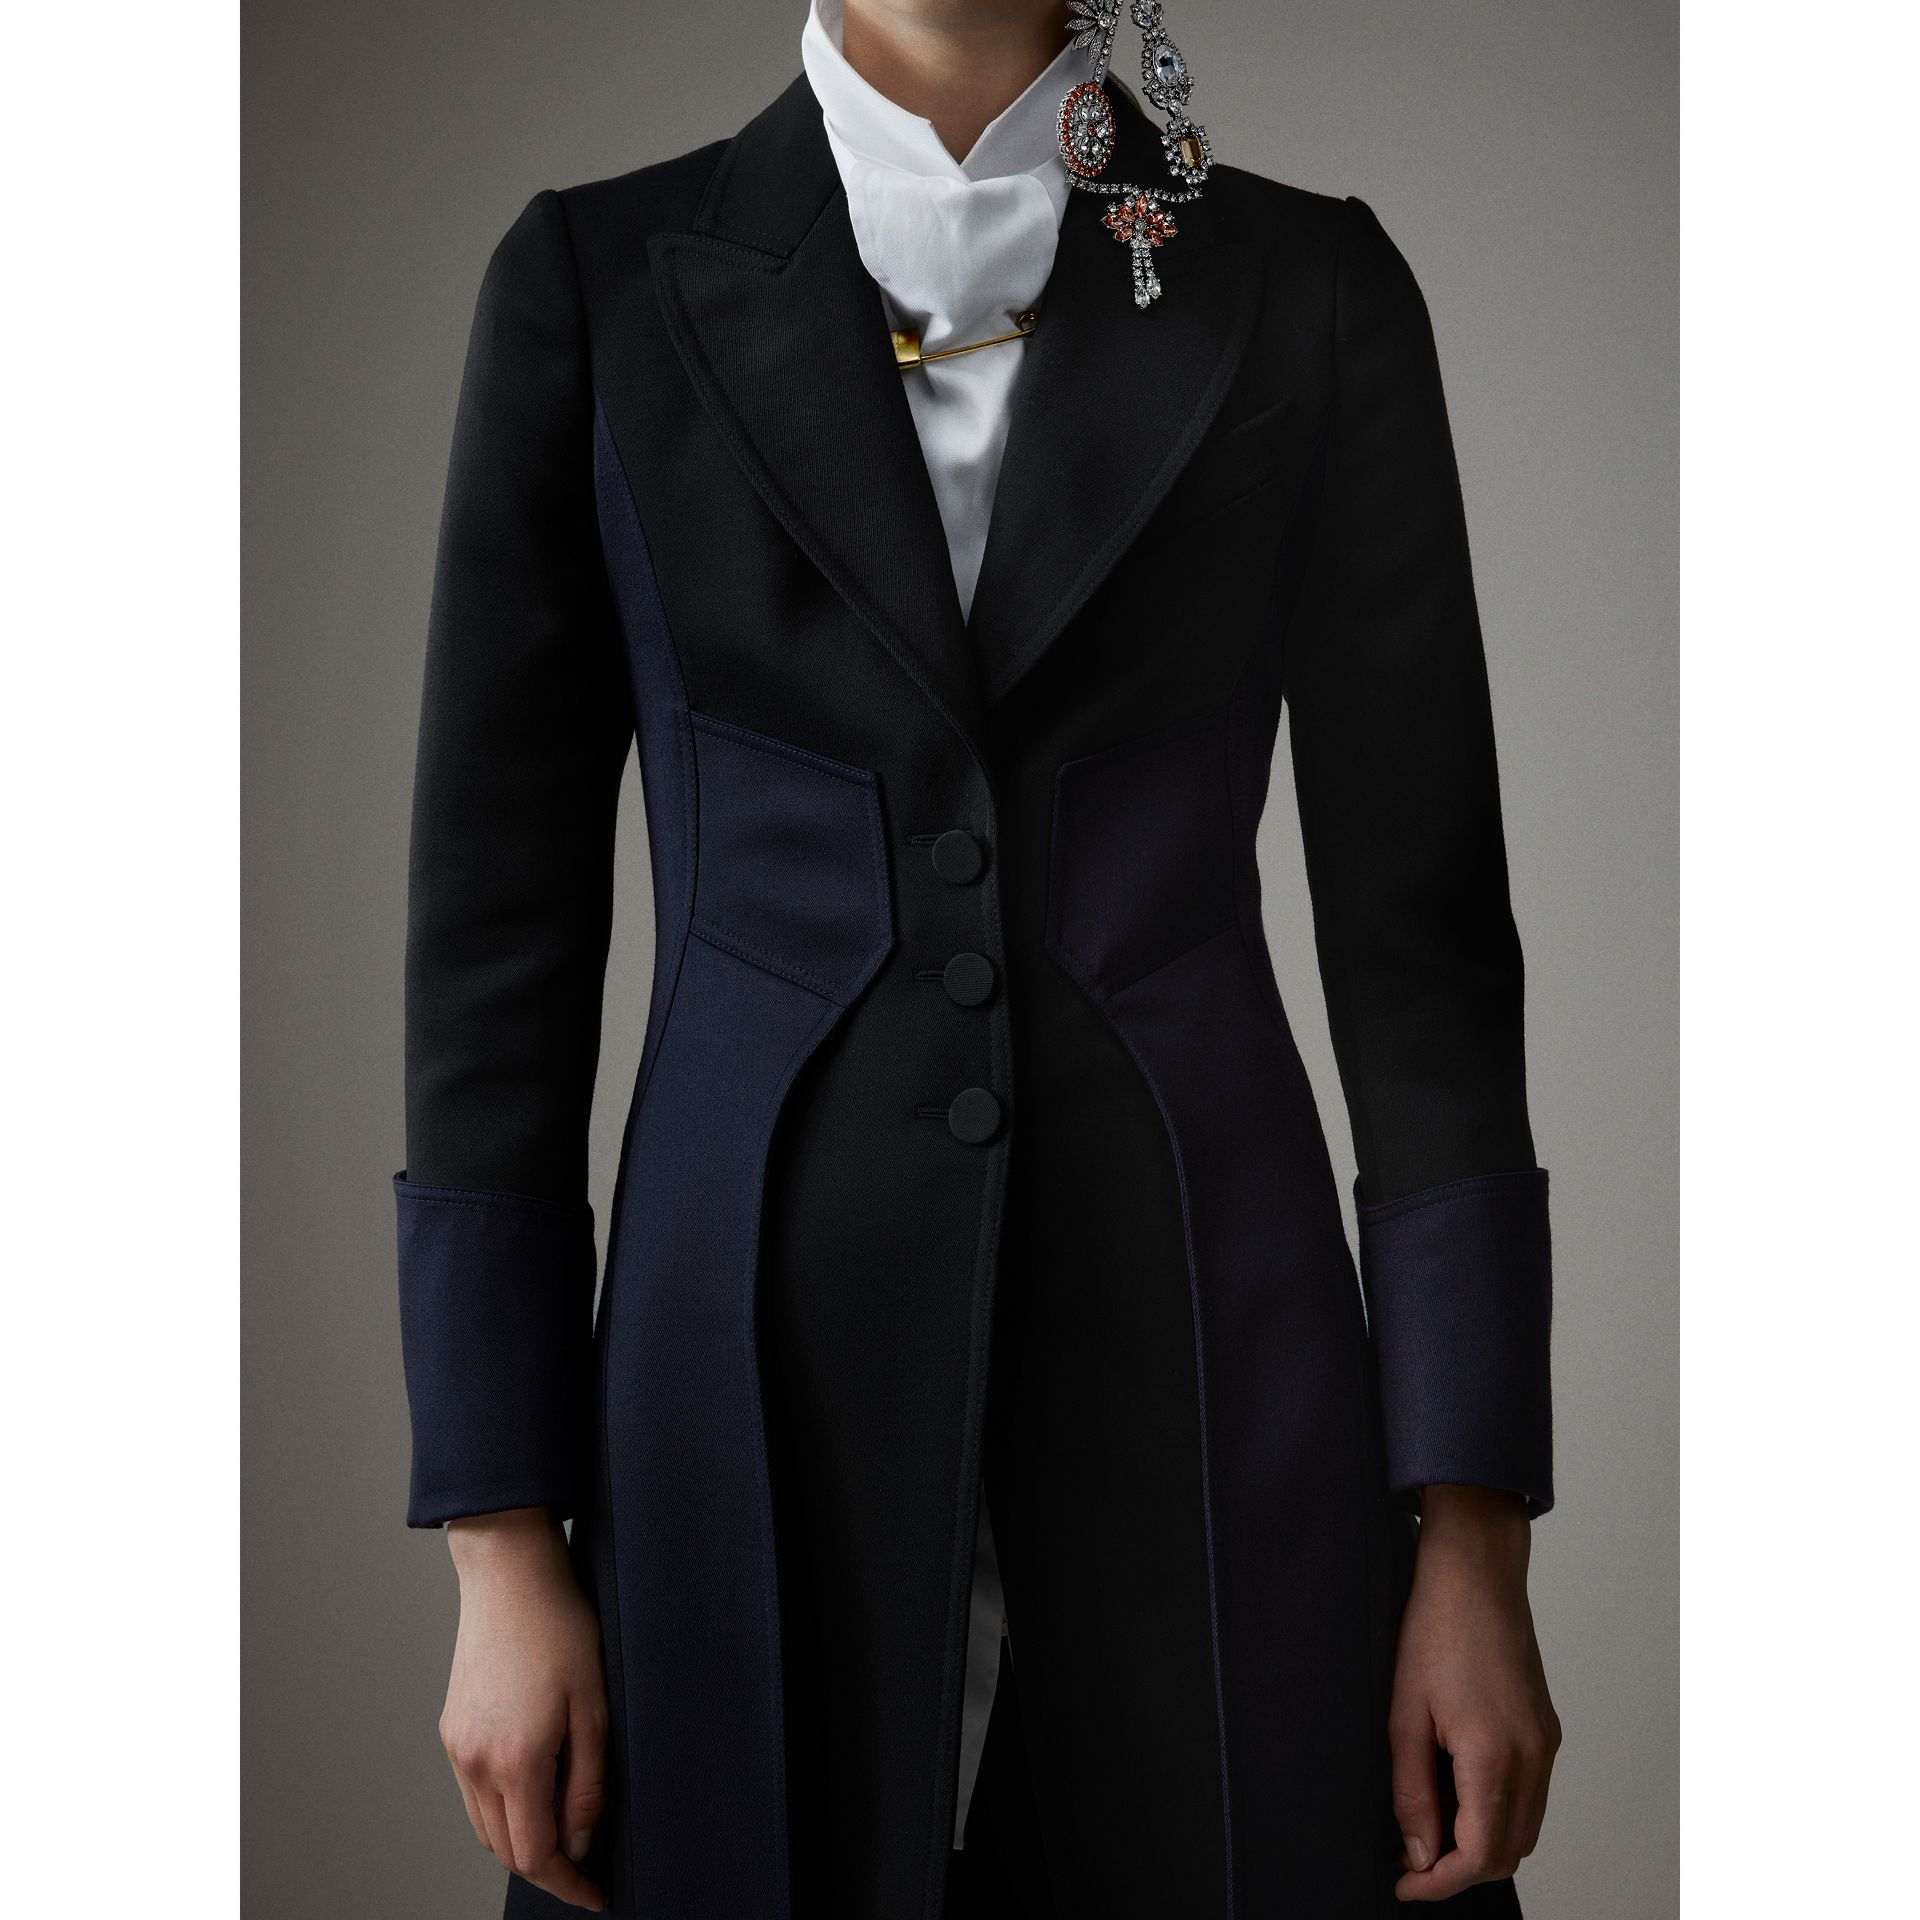 Wool Dressage Coat in Black - Women | Burberry United Kingdom - gallery image 1